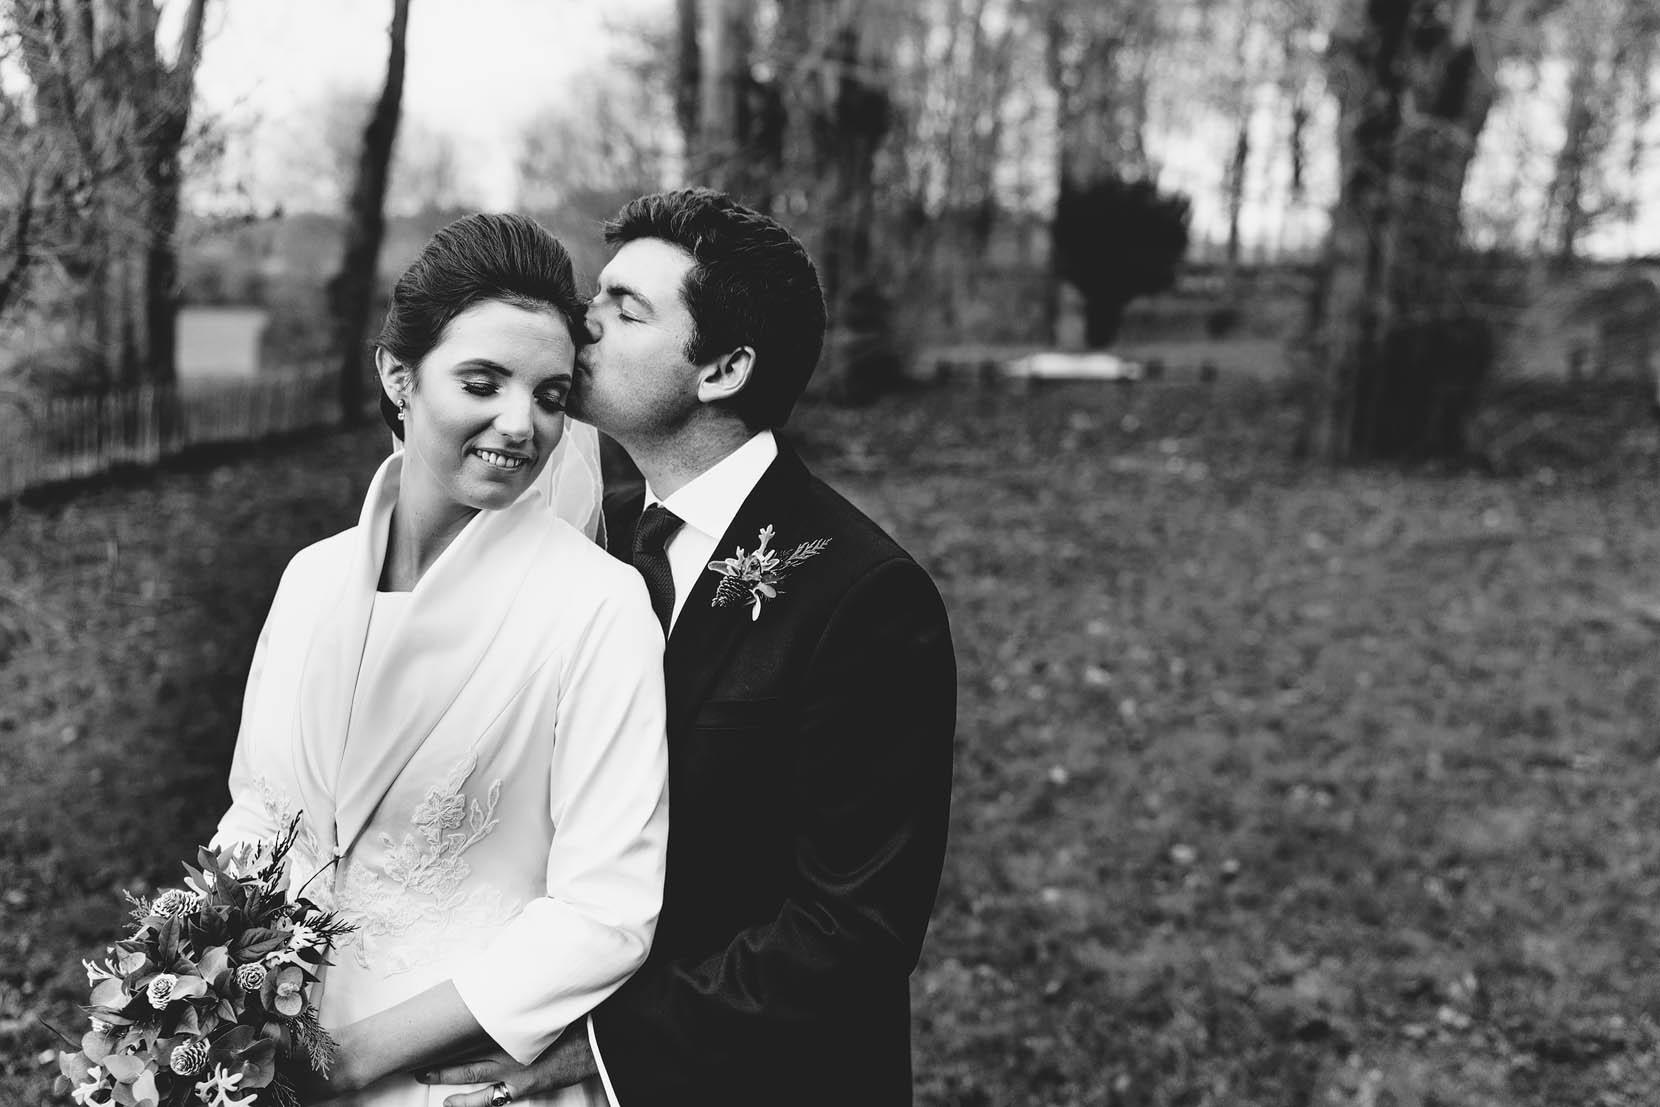 norfolk wedding photgraphy for victoria and edward as they share a moment outside the church at Hardingham